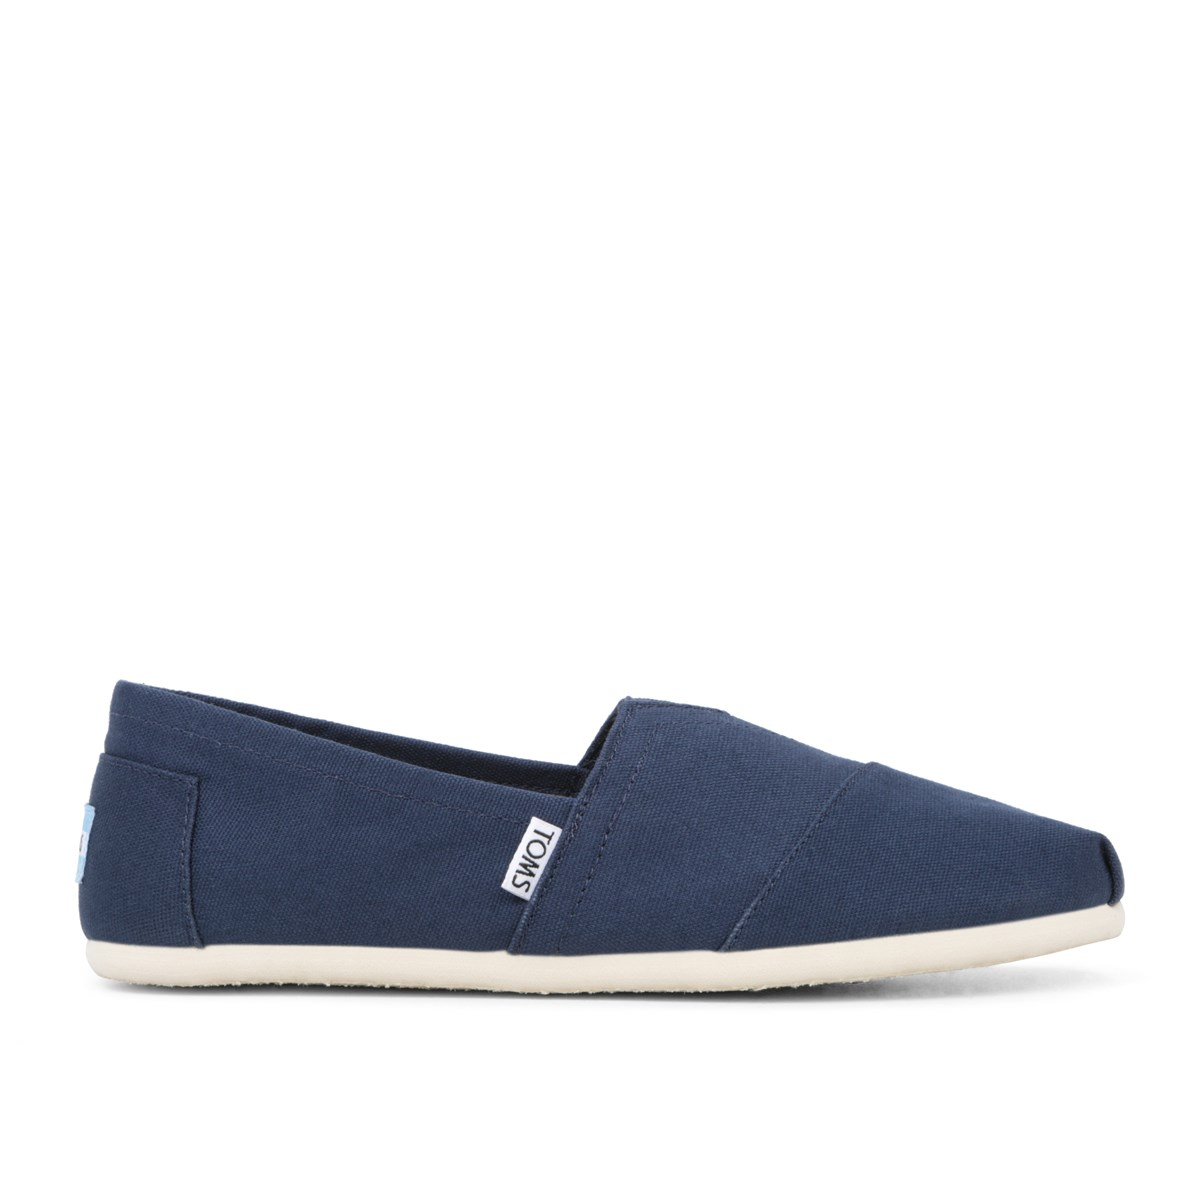 Men's Classic Canvas Navy Slip-On